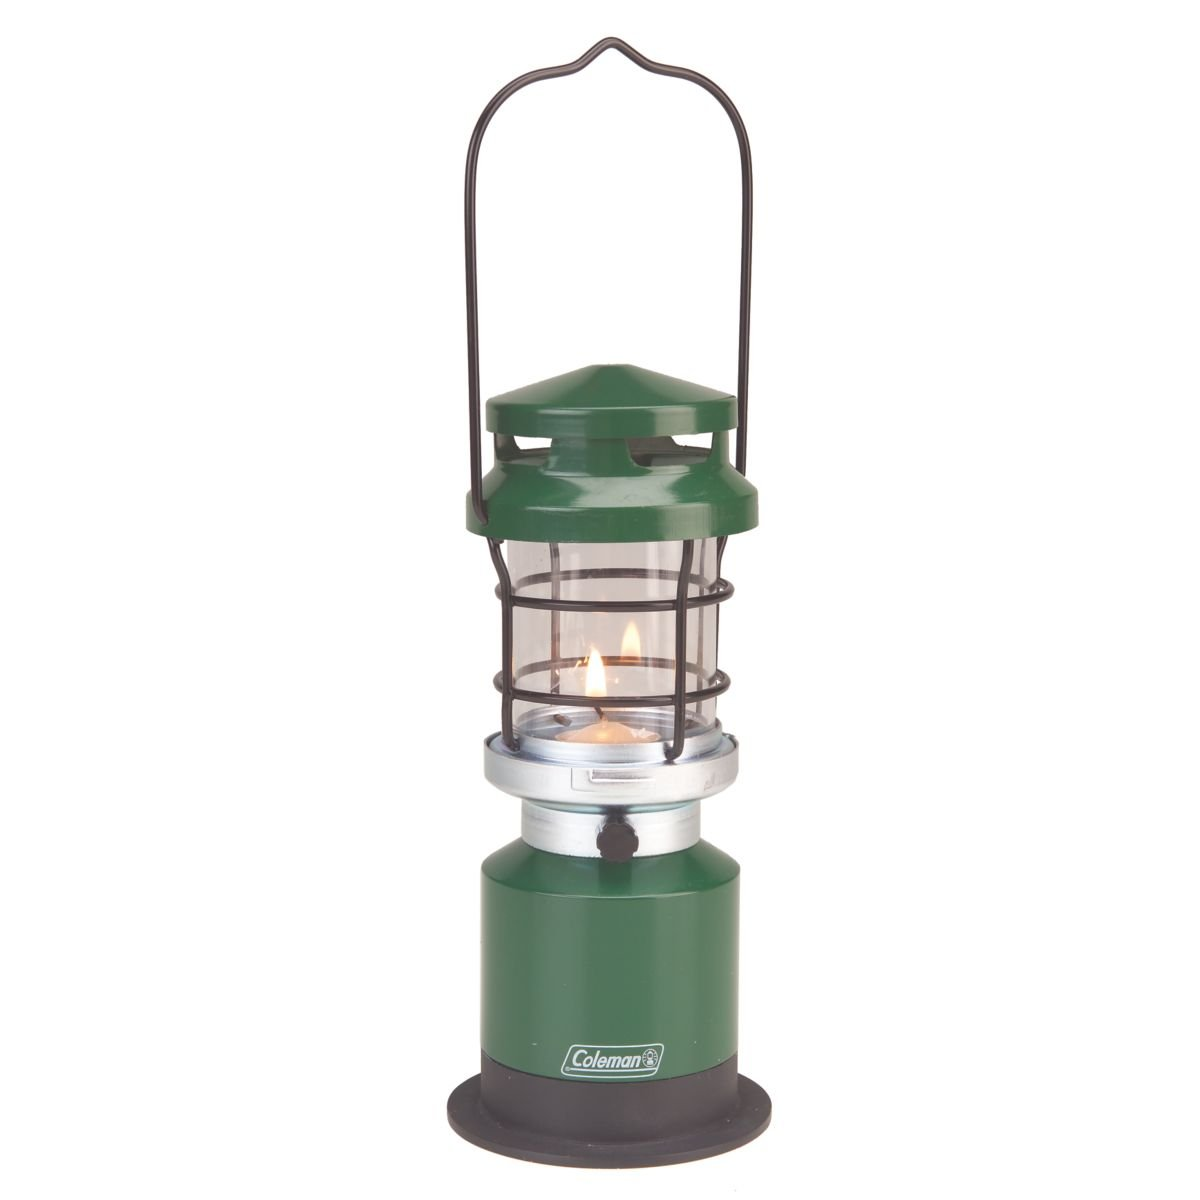 Coleman Northstar Candle Lantern 2000003454